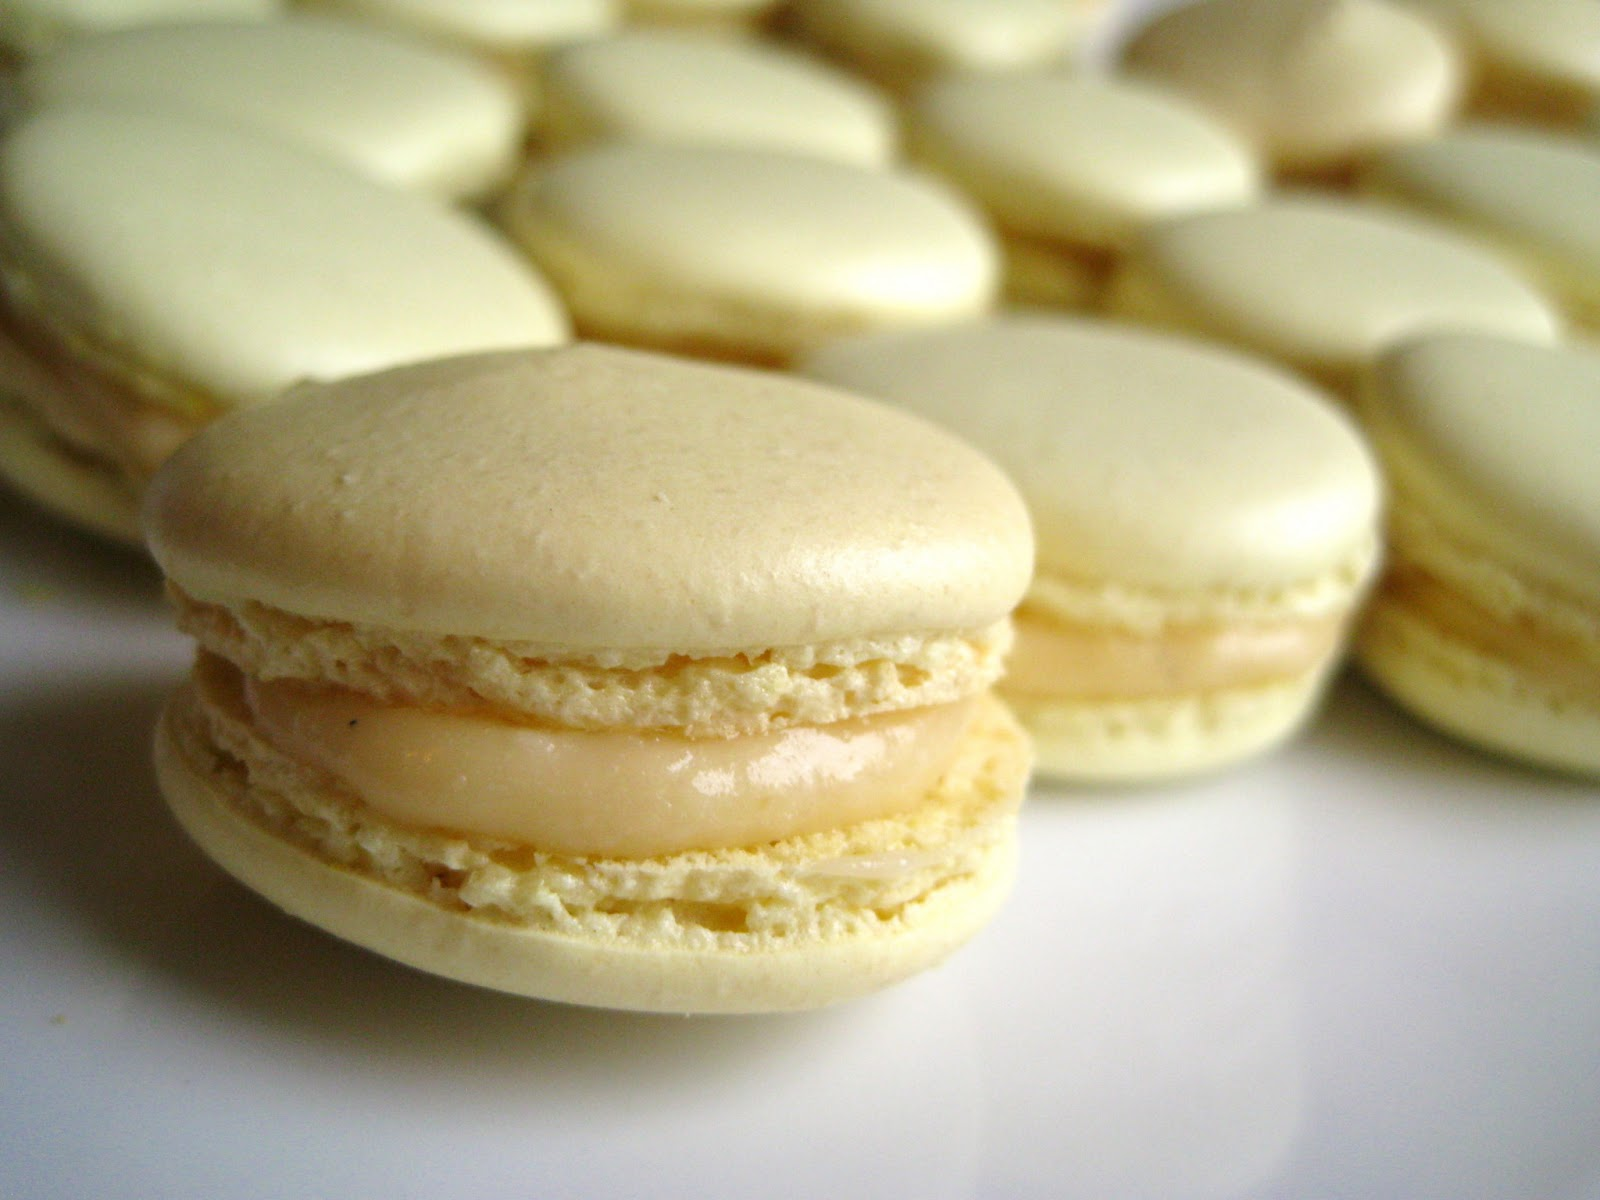 Coques A Macarons Meringue Italienne Recette Detaillee Il